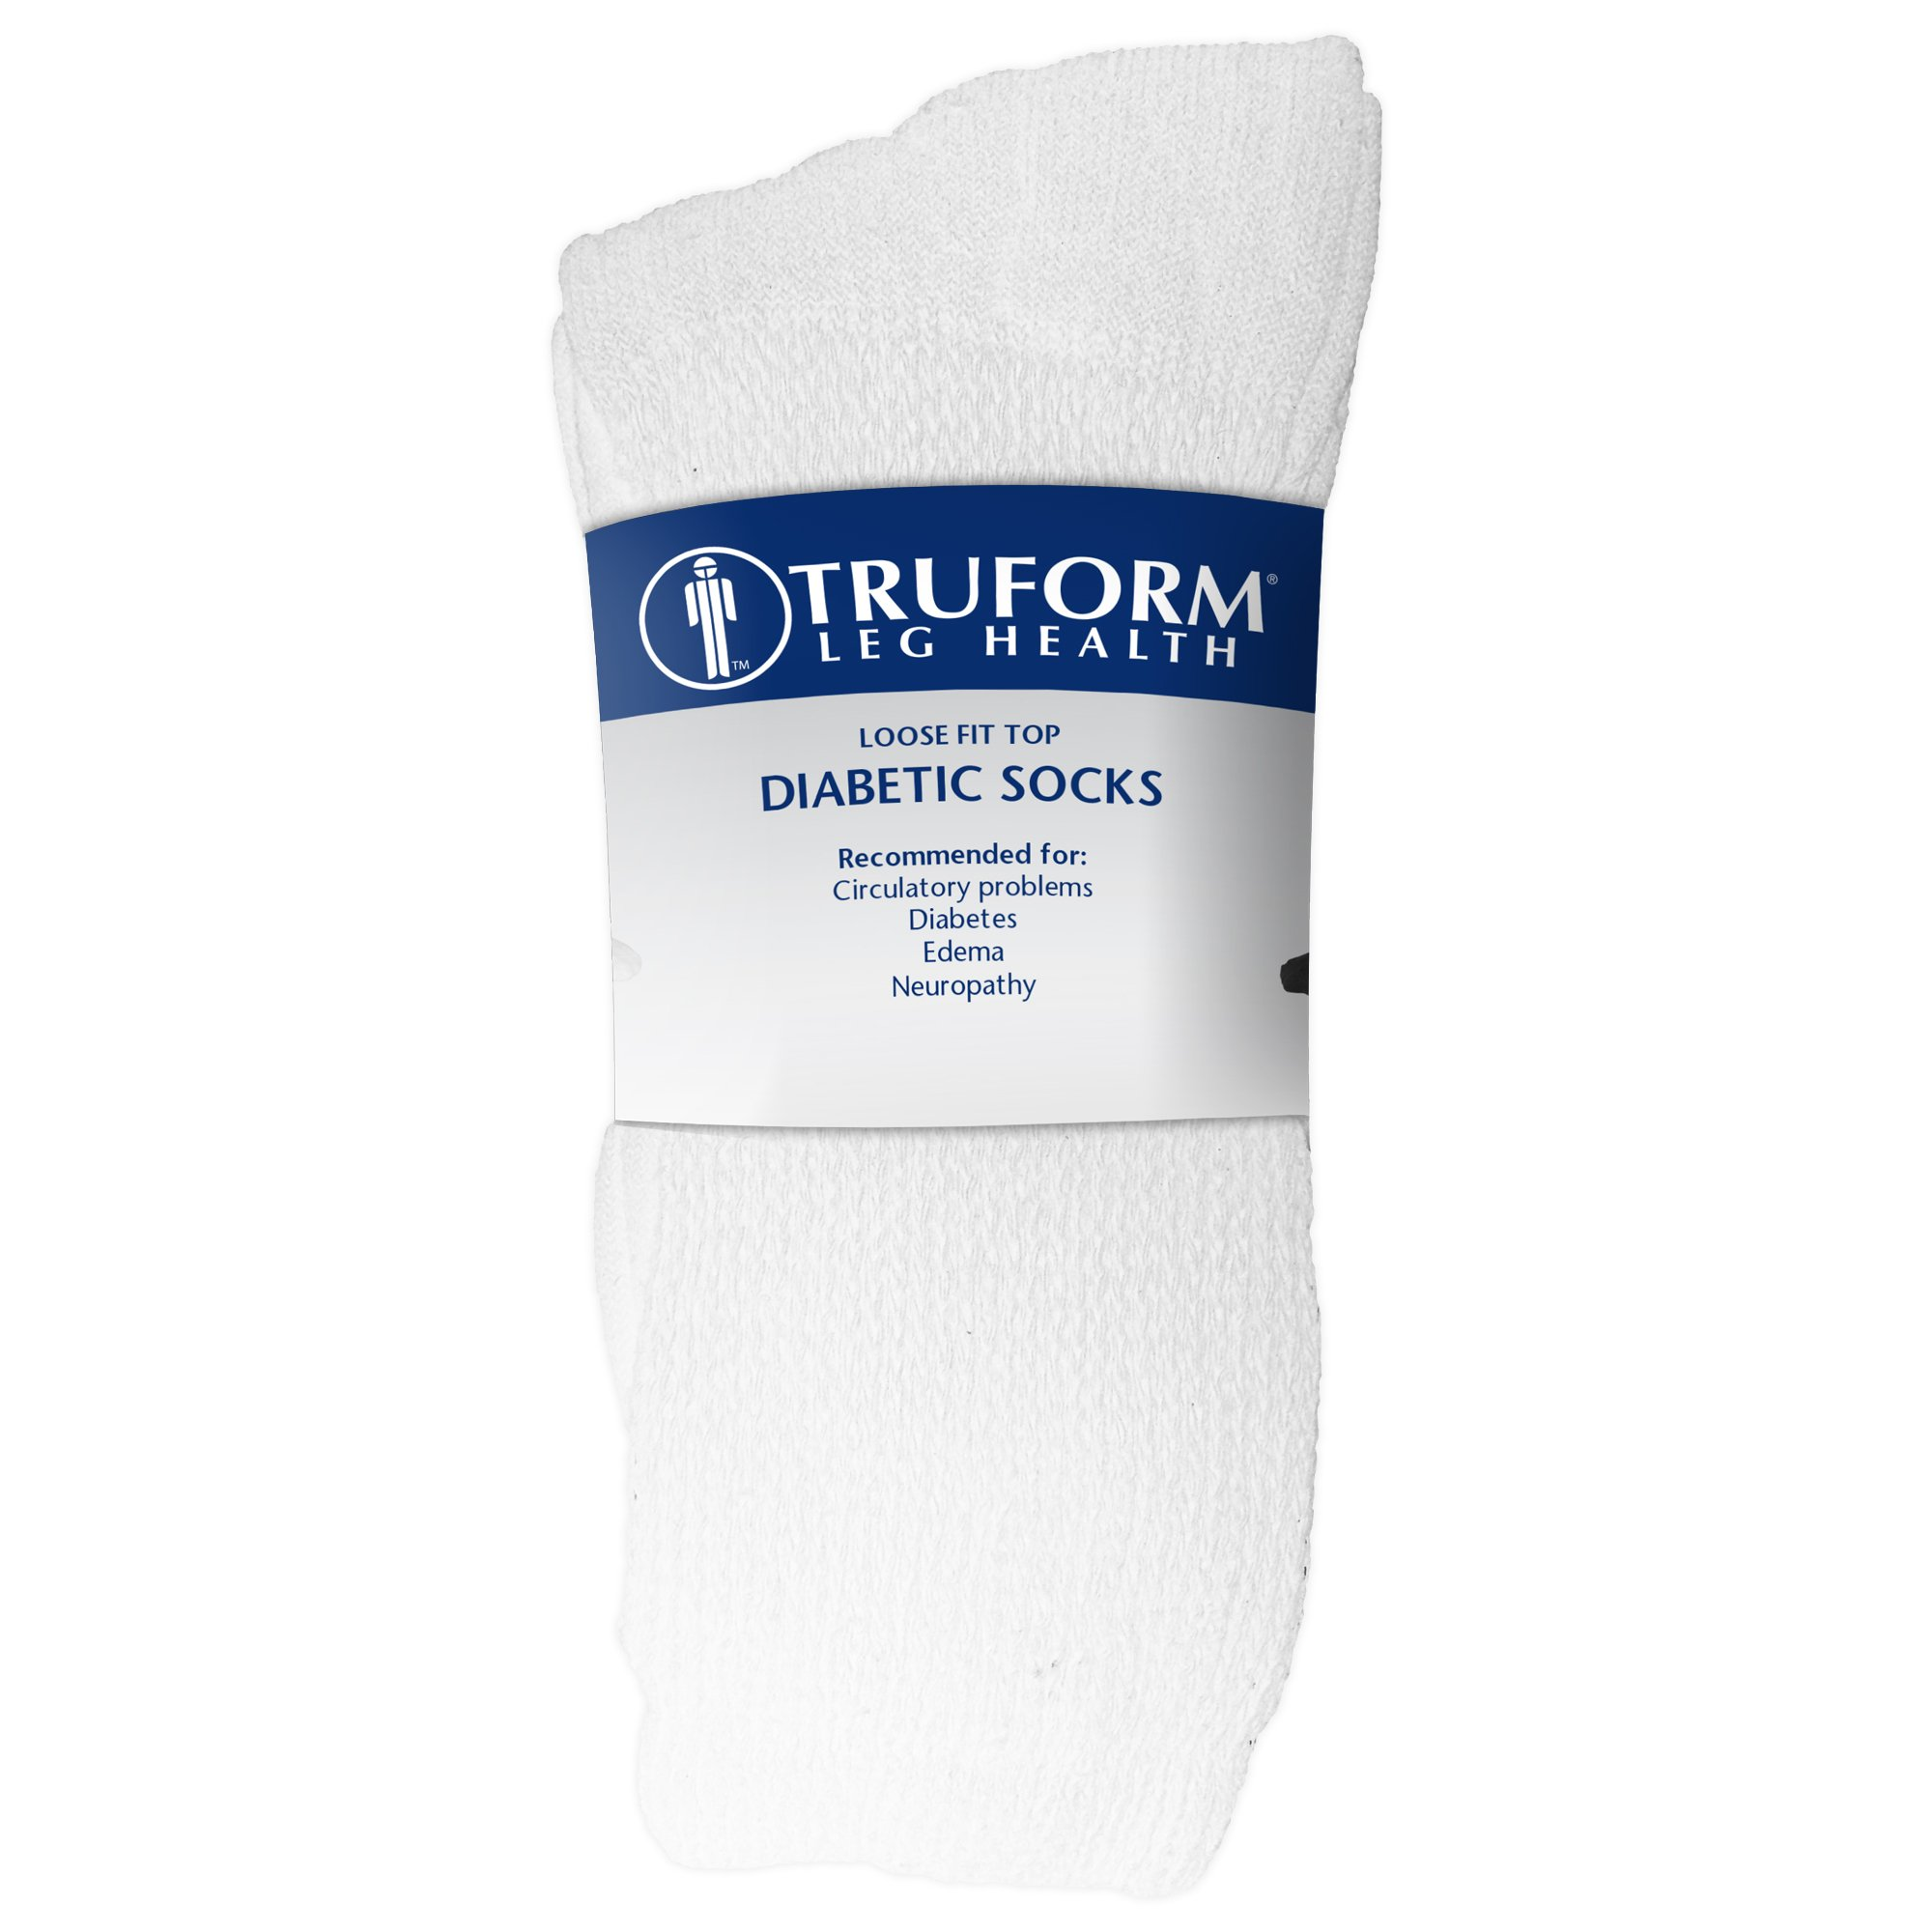 Truform Diabetic Socks Loose Fit, Medical Style, 3 Pairs, White by Truform (Image #5)